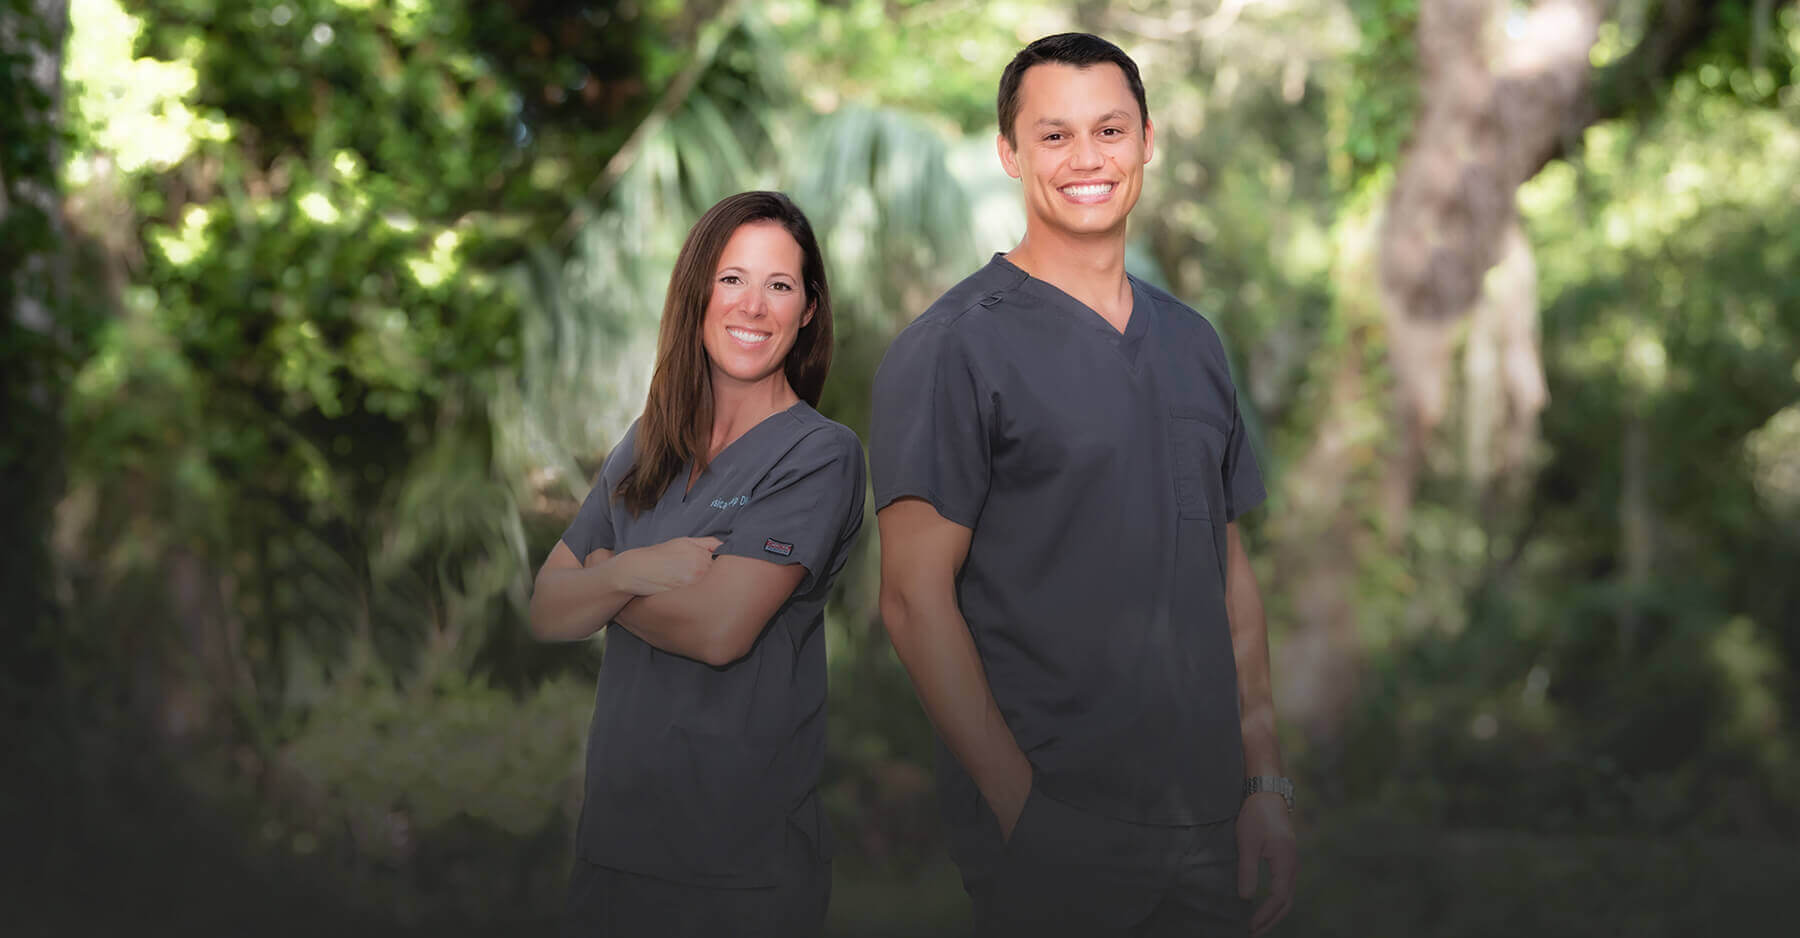 Your friendly dentists in St. Marys, GA standing next to each other